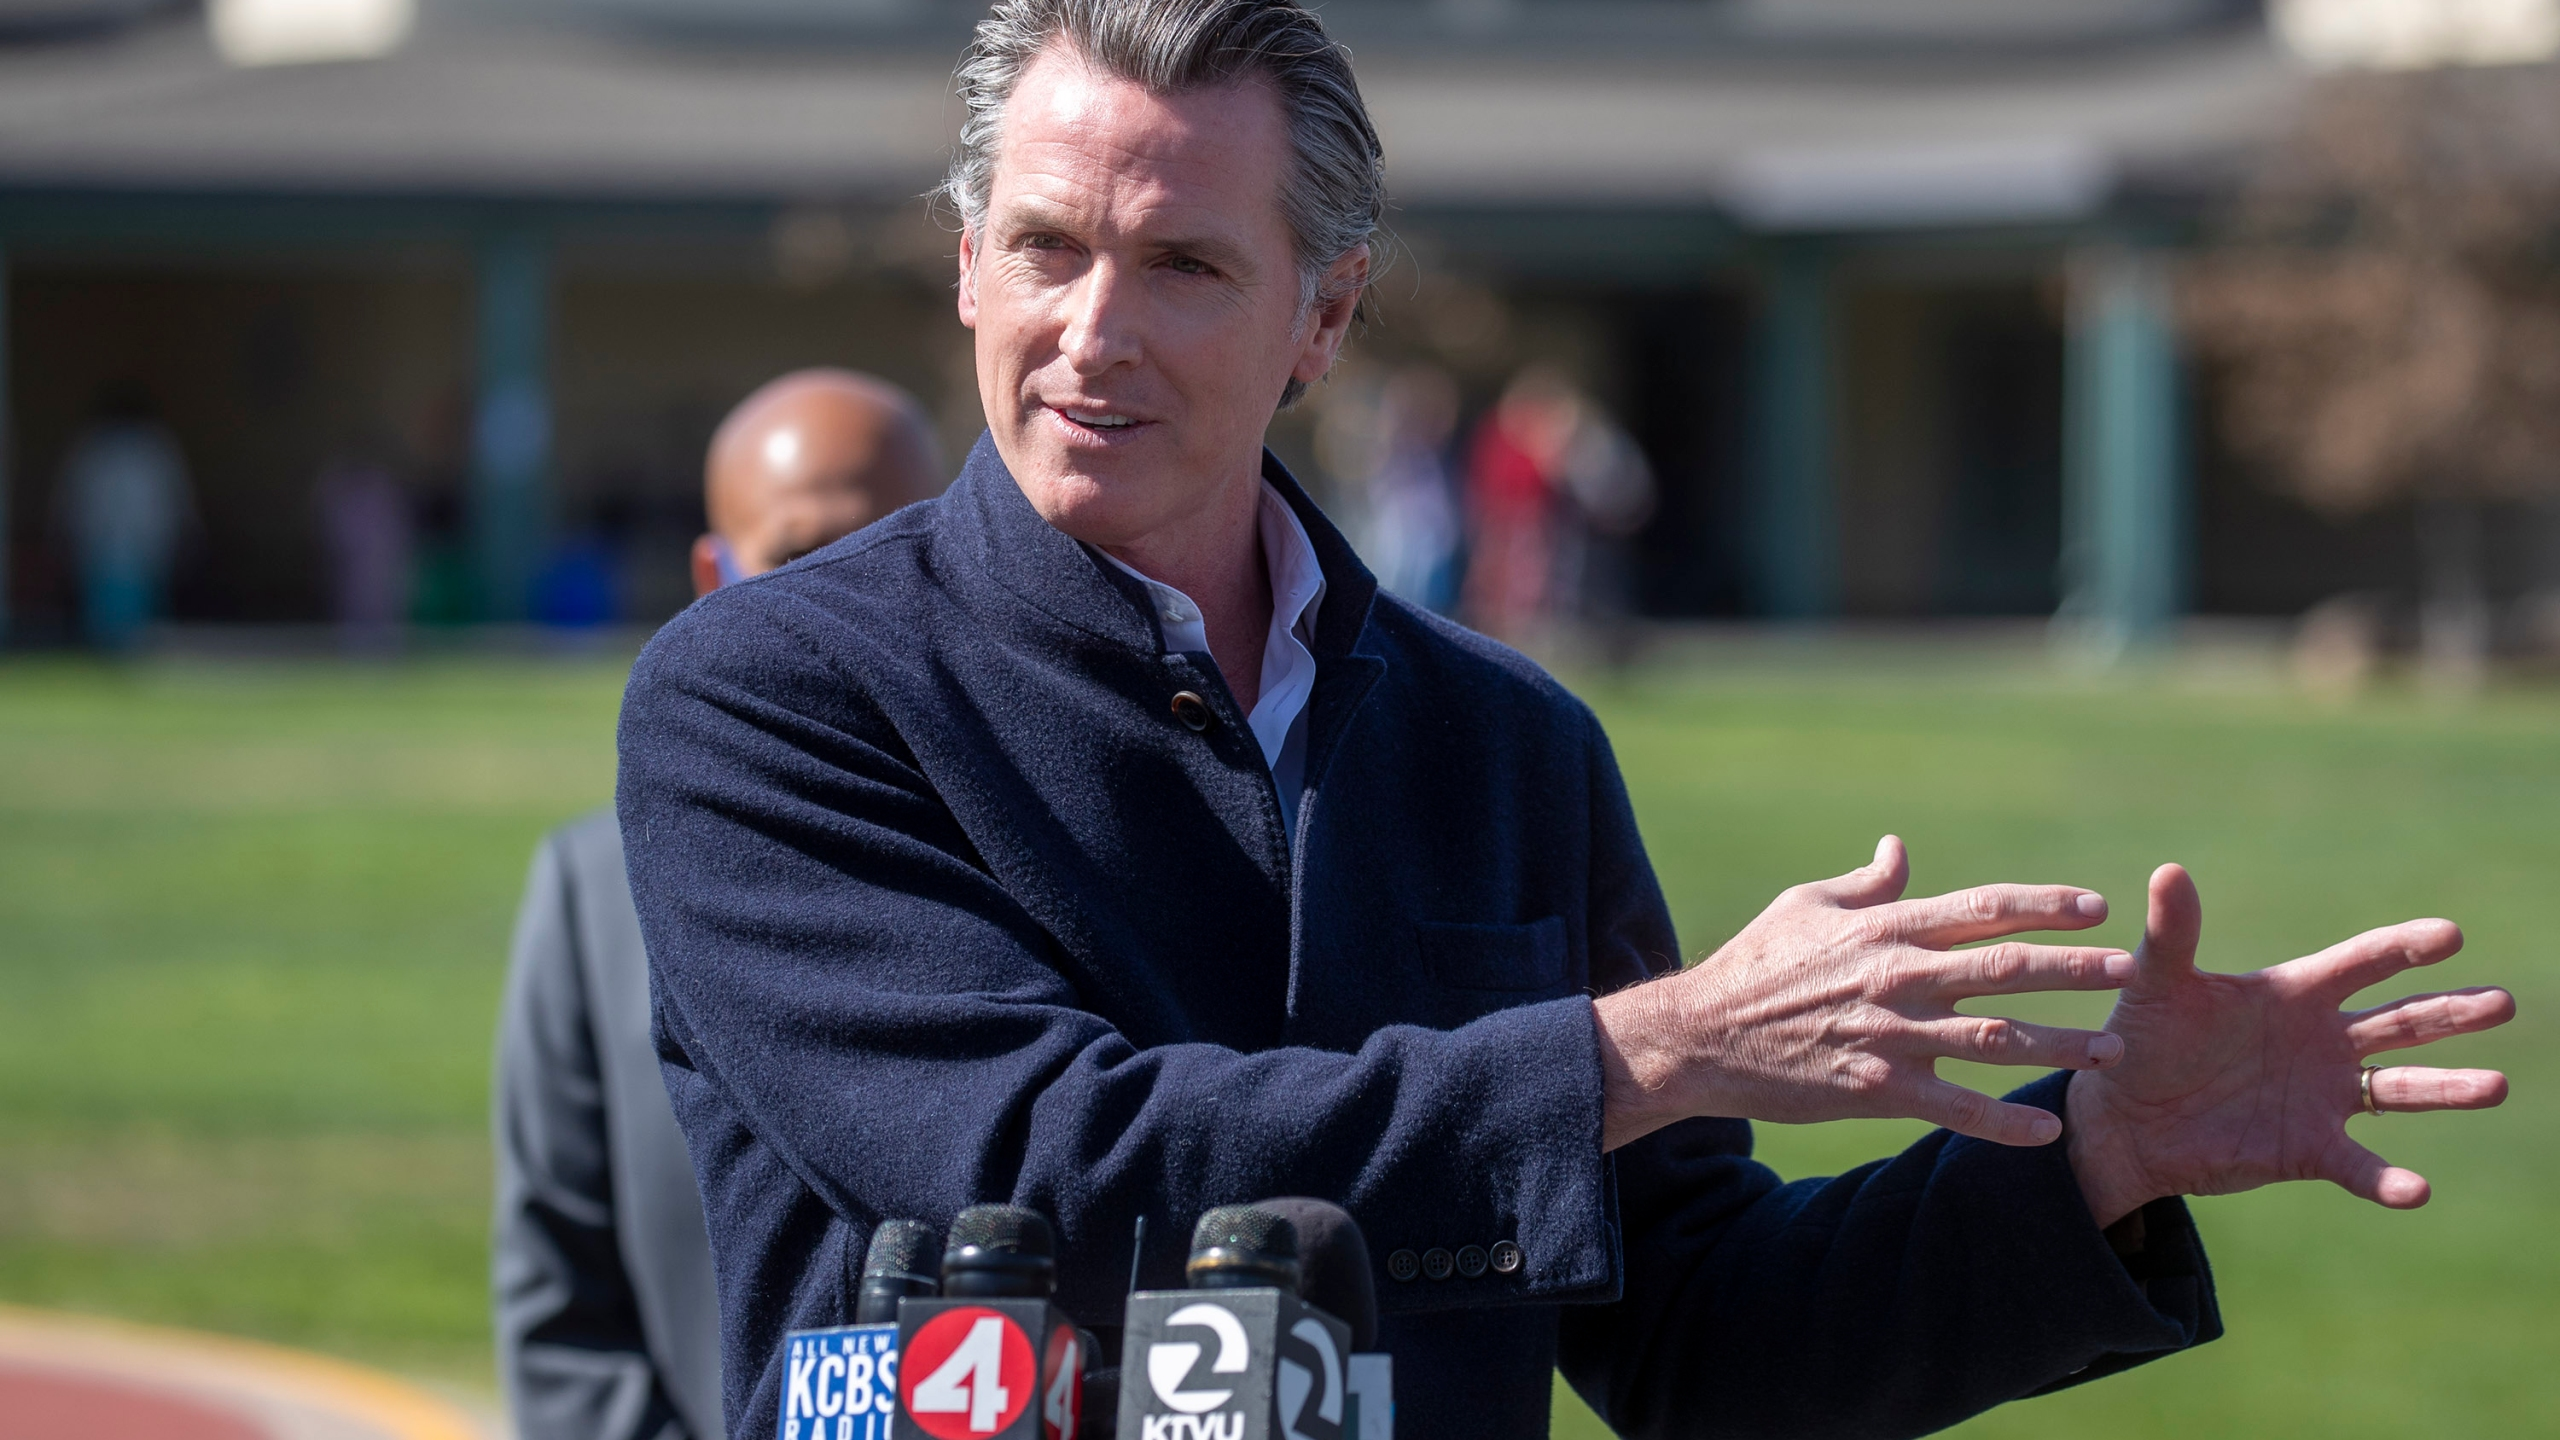 California Gov. Gavin Newsom speaks about the state's plan to reopen schools as coronavirus vaccinations continue during a news conference on the schoolyard at Barron Park Elementary in Palo Alto on March 2, 2021. (Karl Mondon / Bay Area News Group via Associated Press)